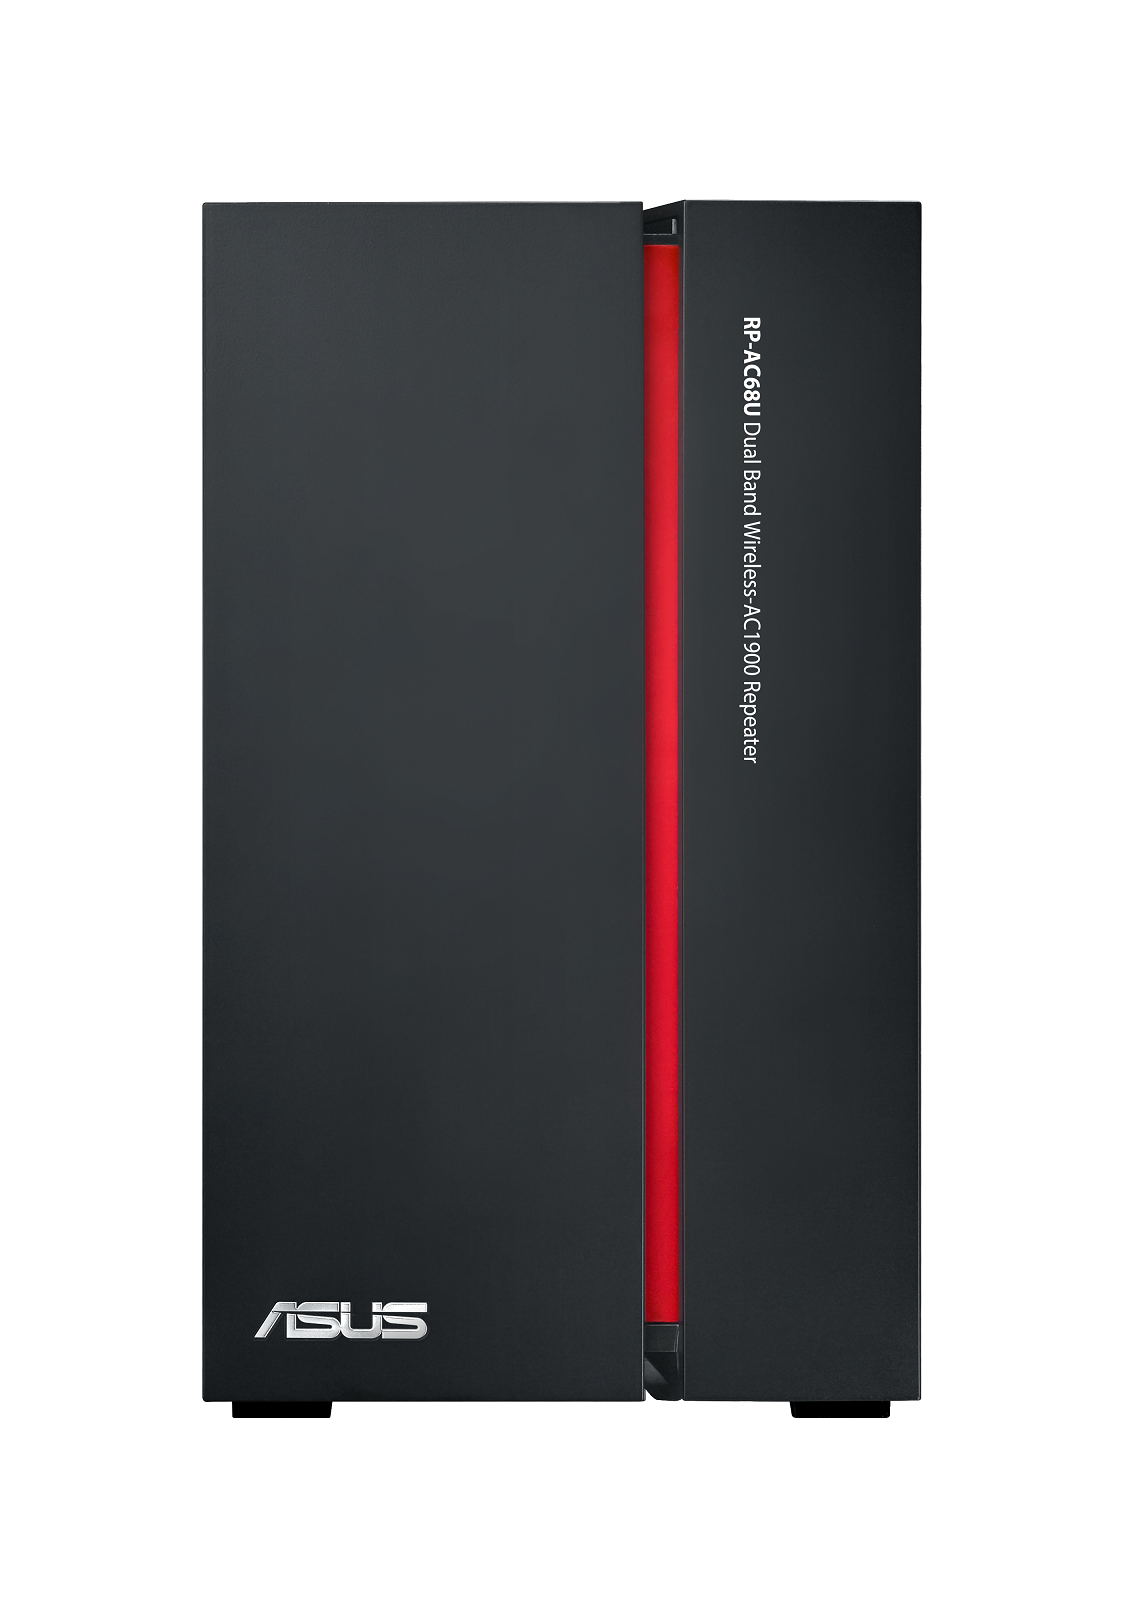 ASUS RP-AC68U dual-band wireless AC1900 repeater_front